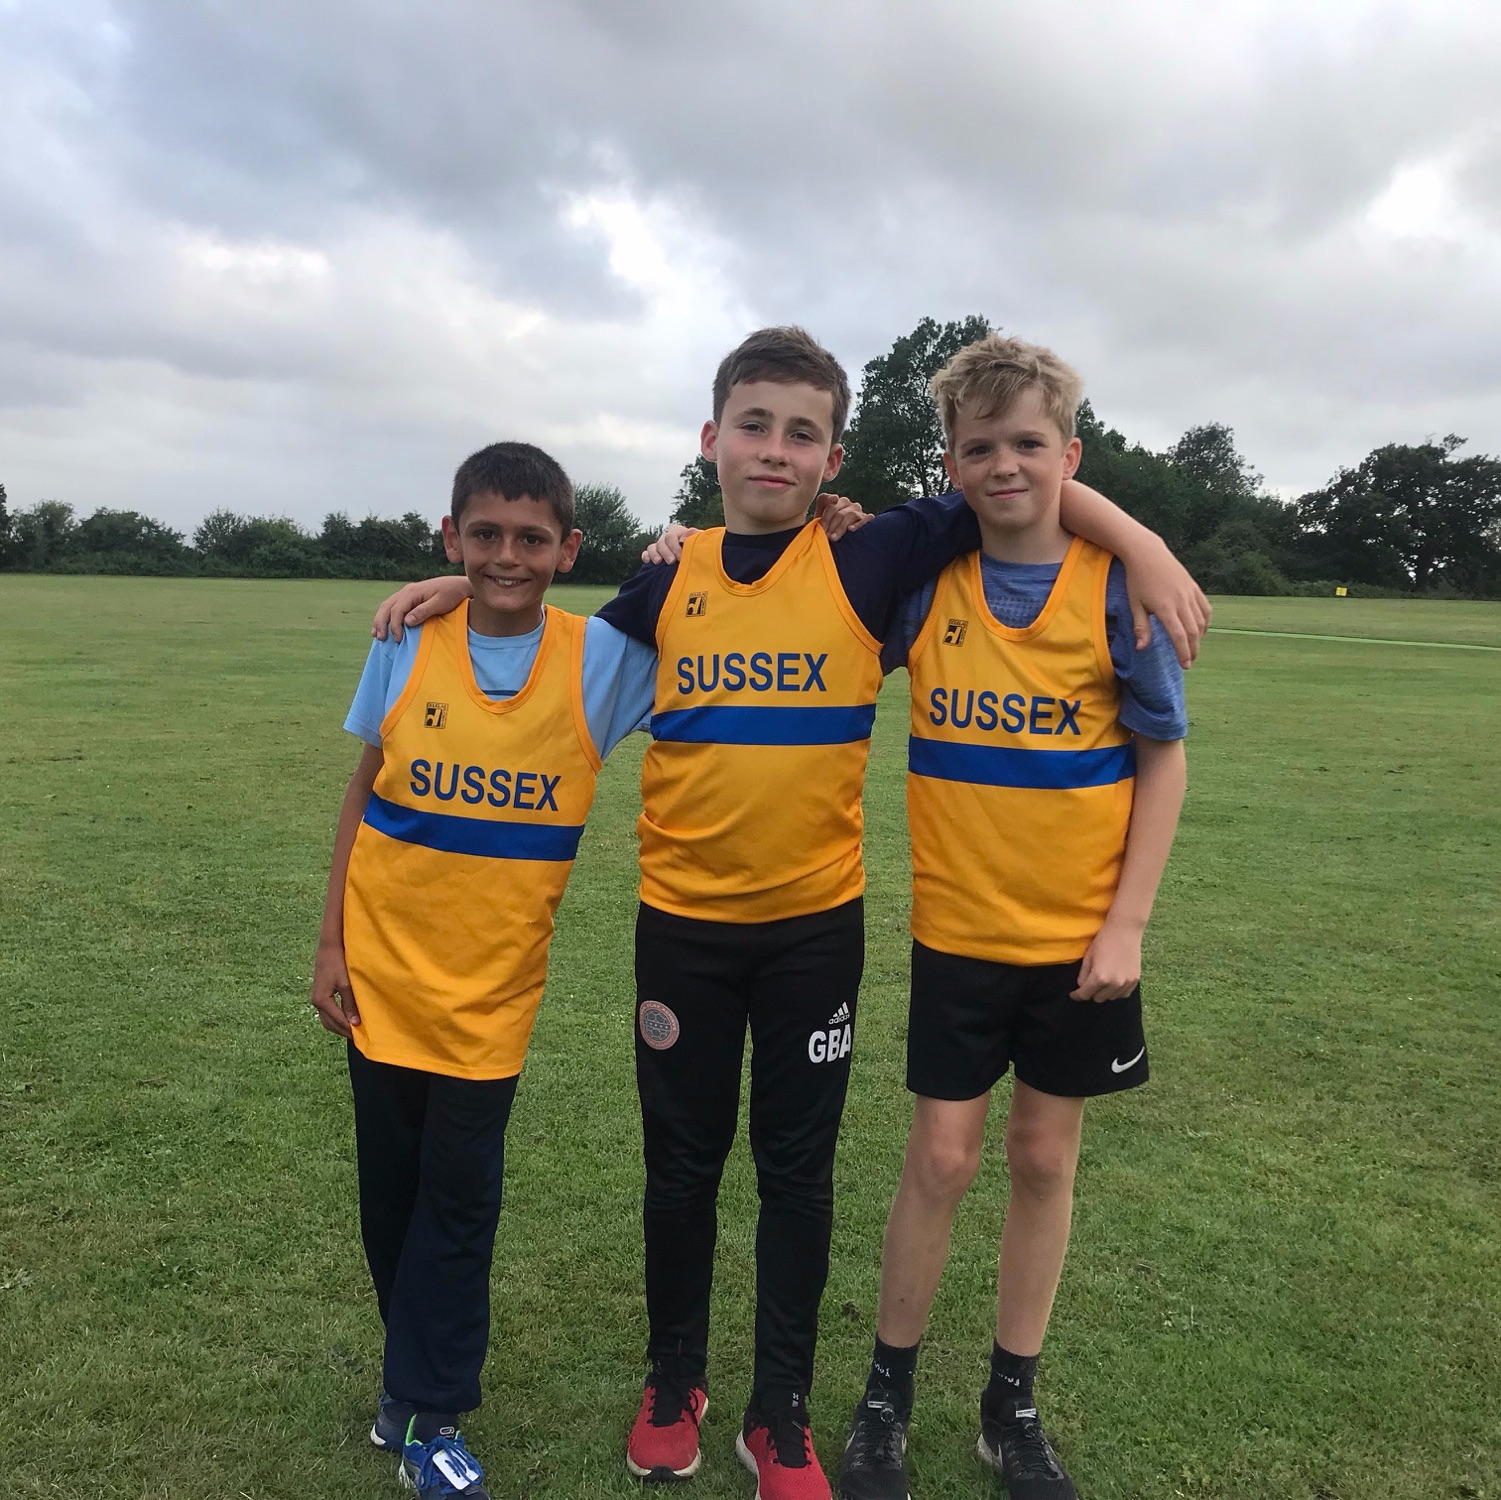 U13 Harriers selected to represent Sussex